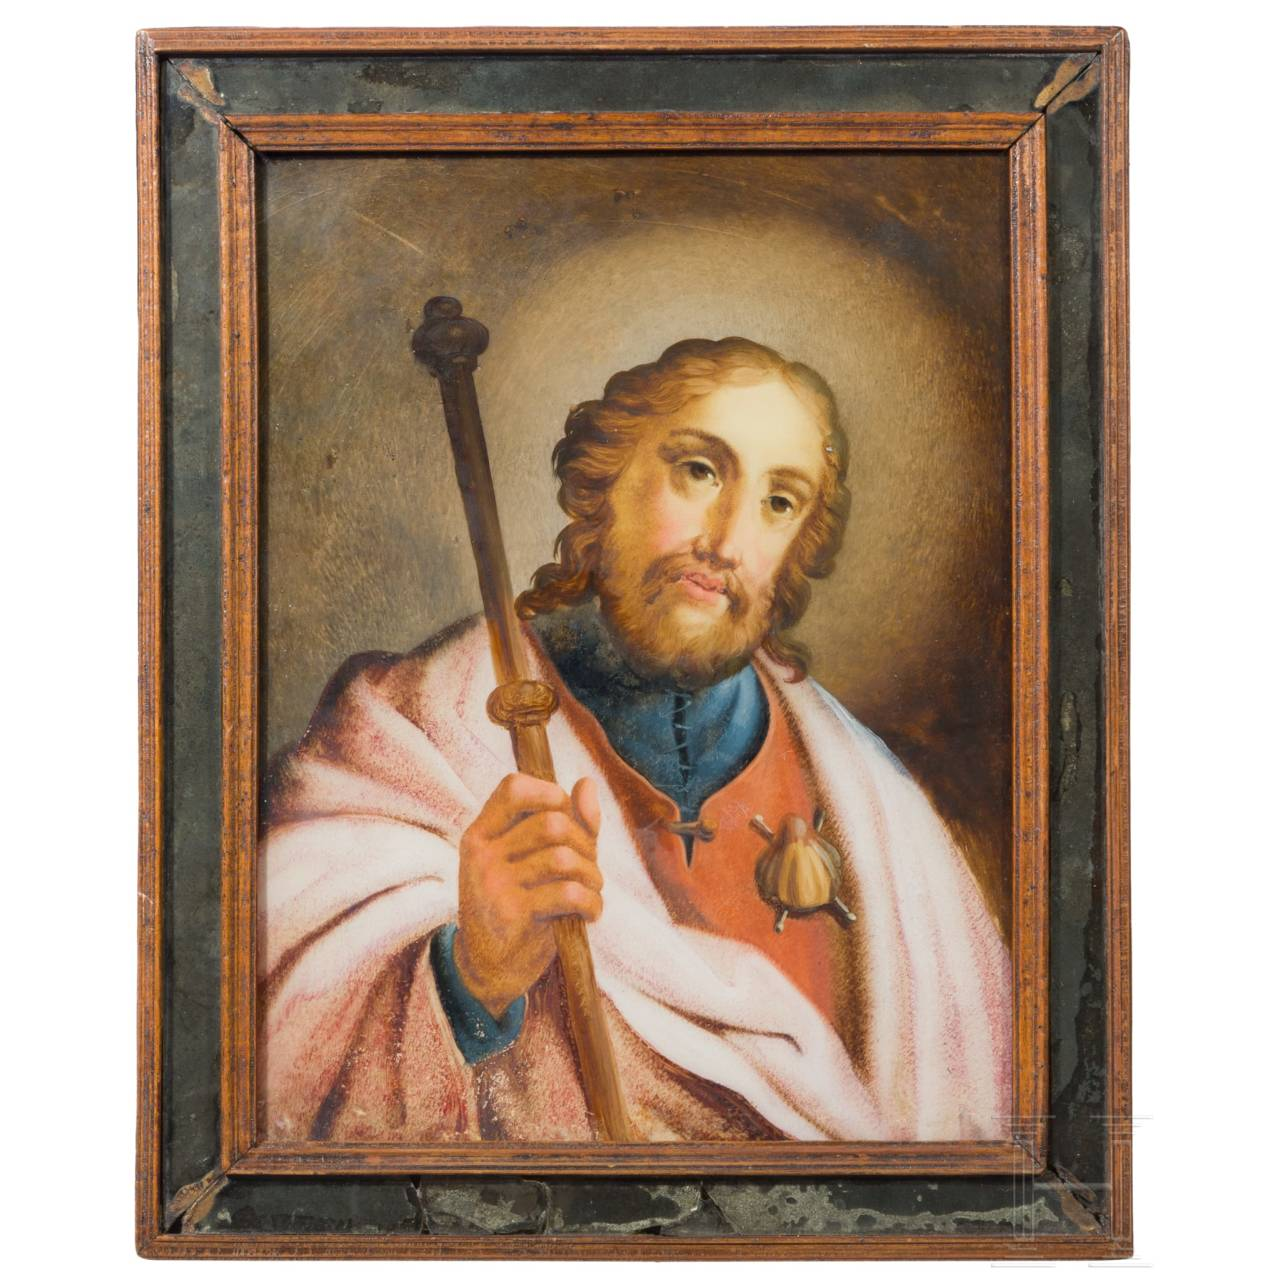 A reverse glass painting of St. James, Augsburg, 18th century